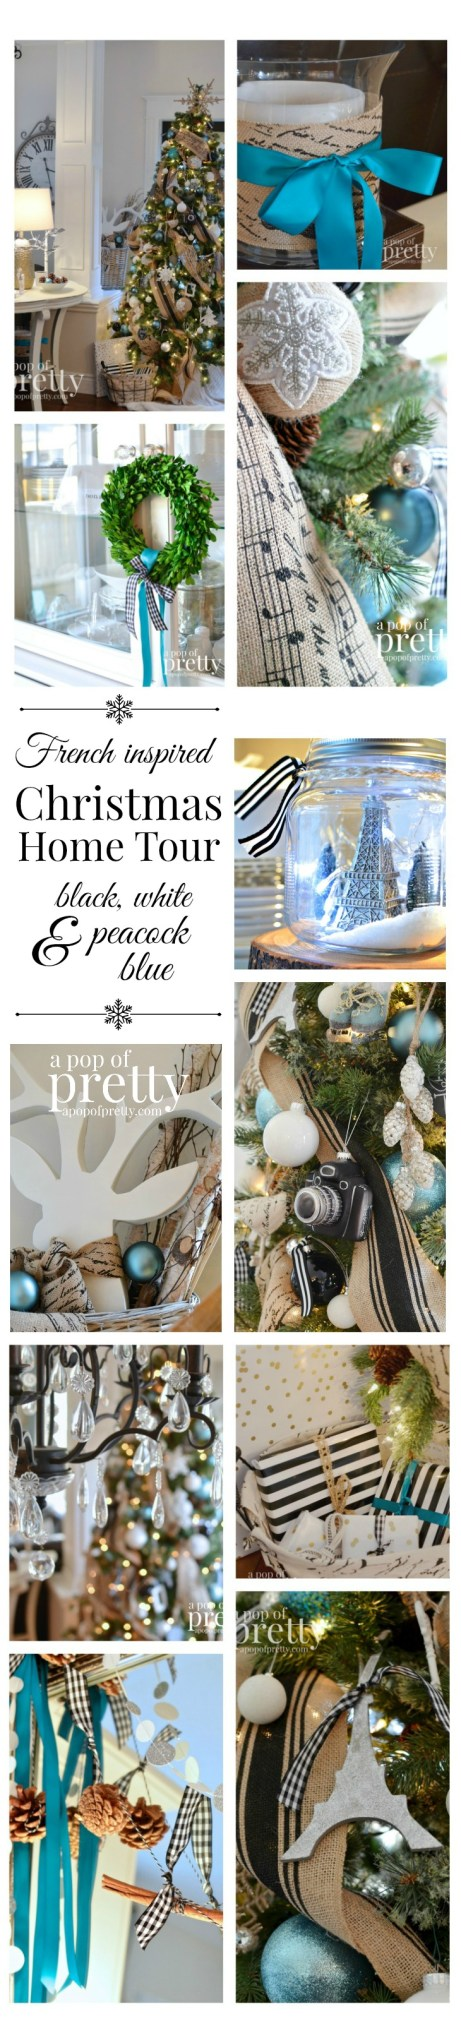 French Inspired Christmas Home Tour Pinnable Collage